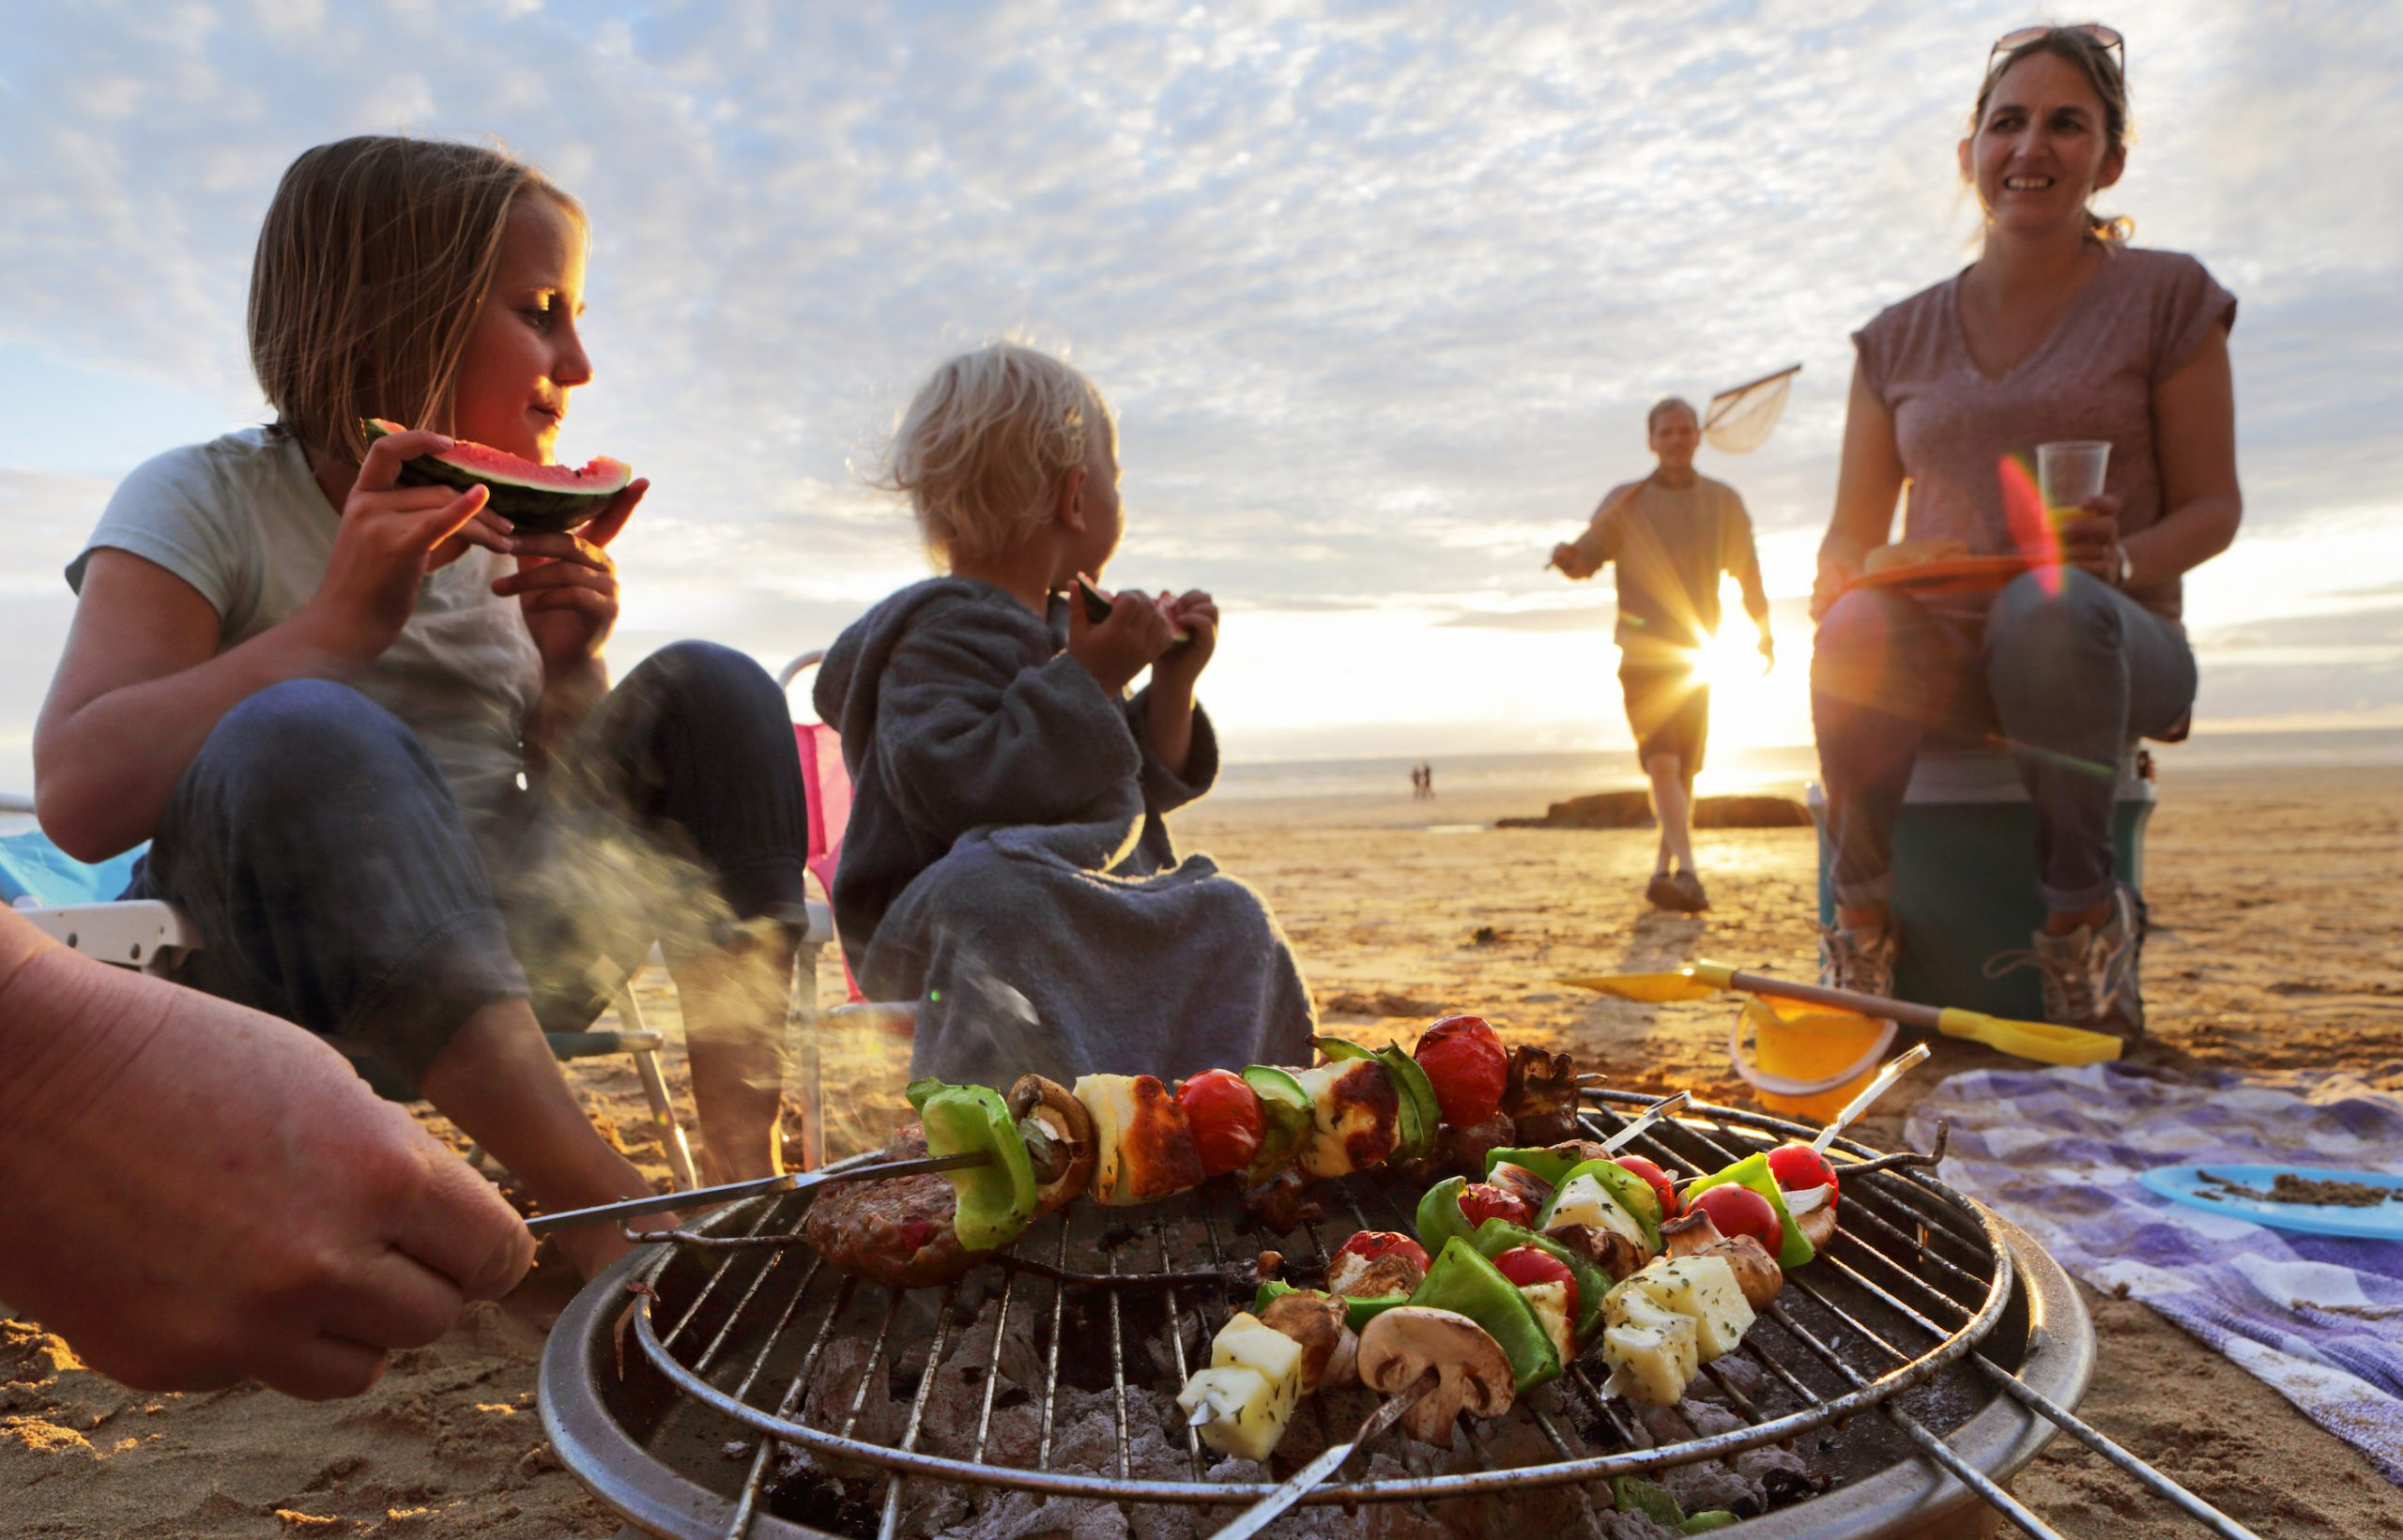 A family is enjoying grilling kebabs together on the beach as the sun begins to set.